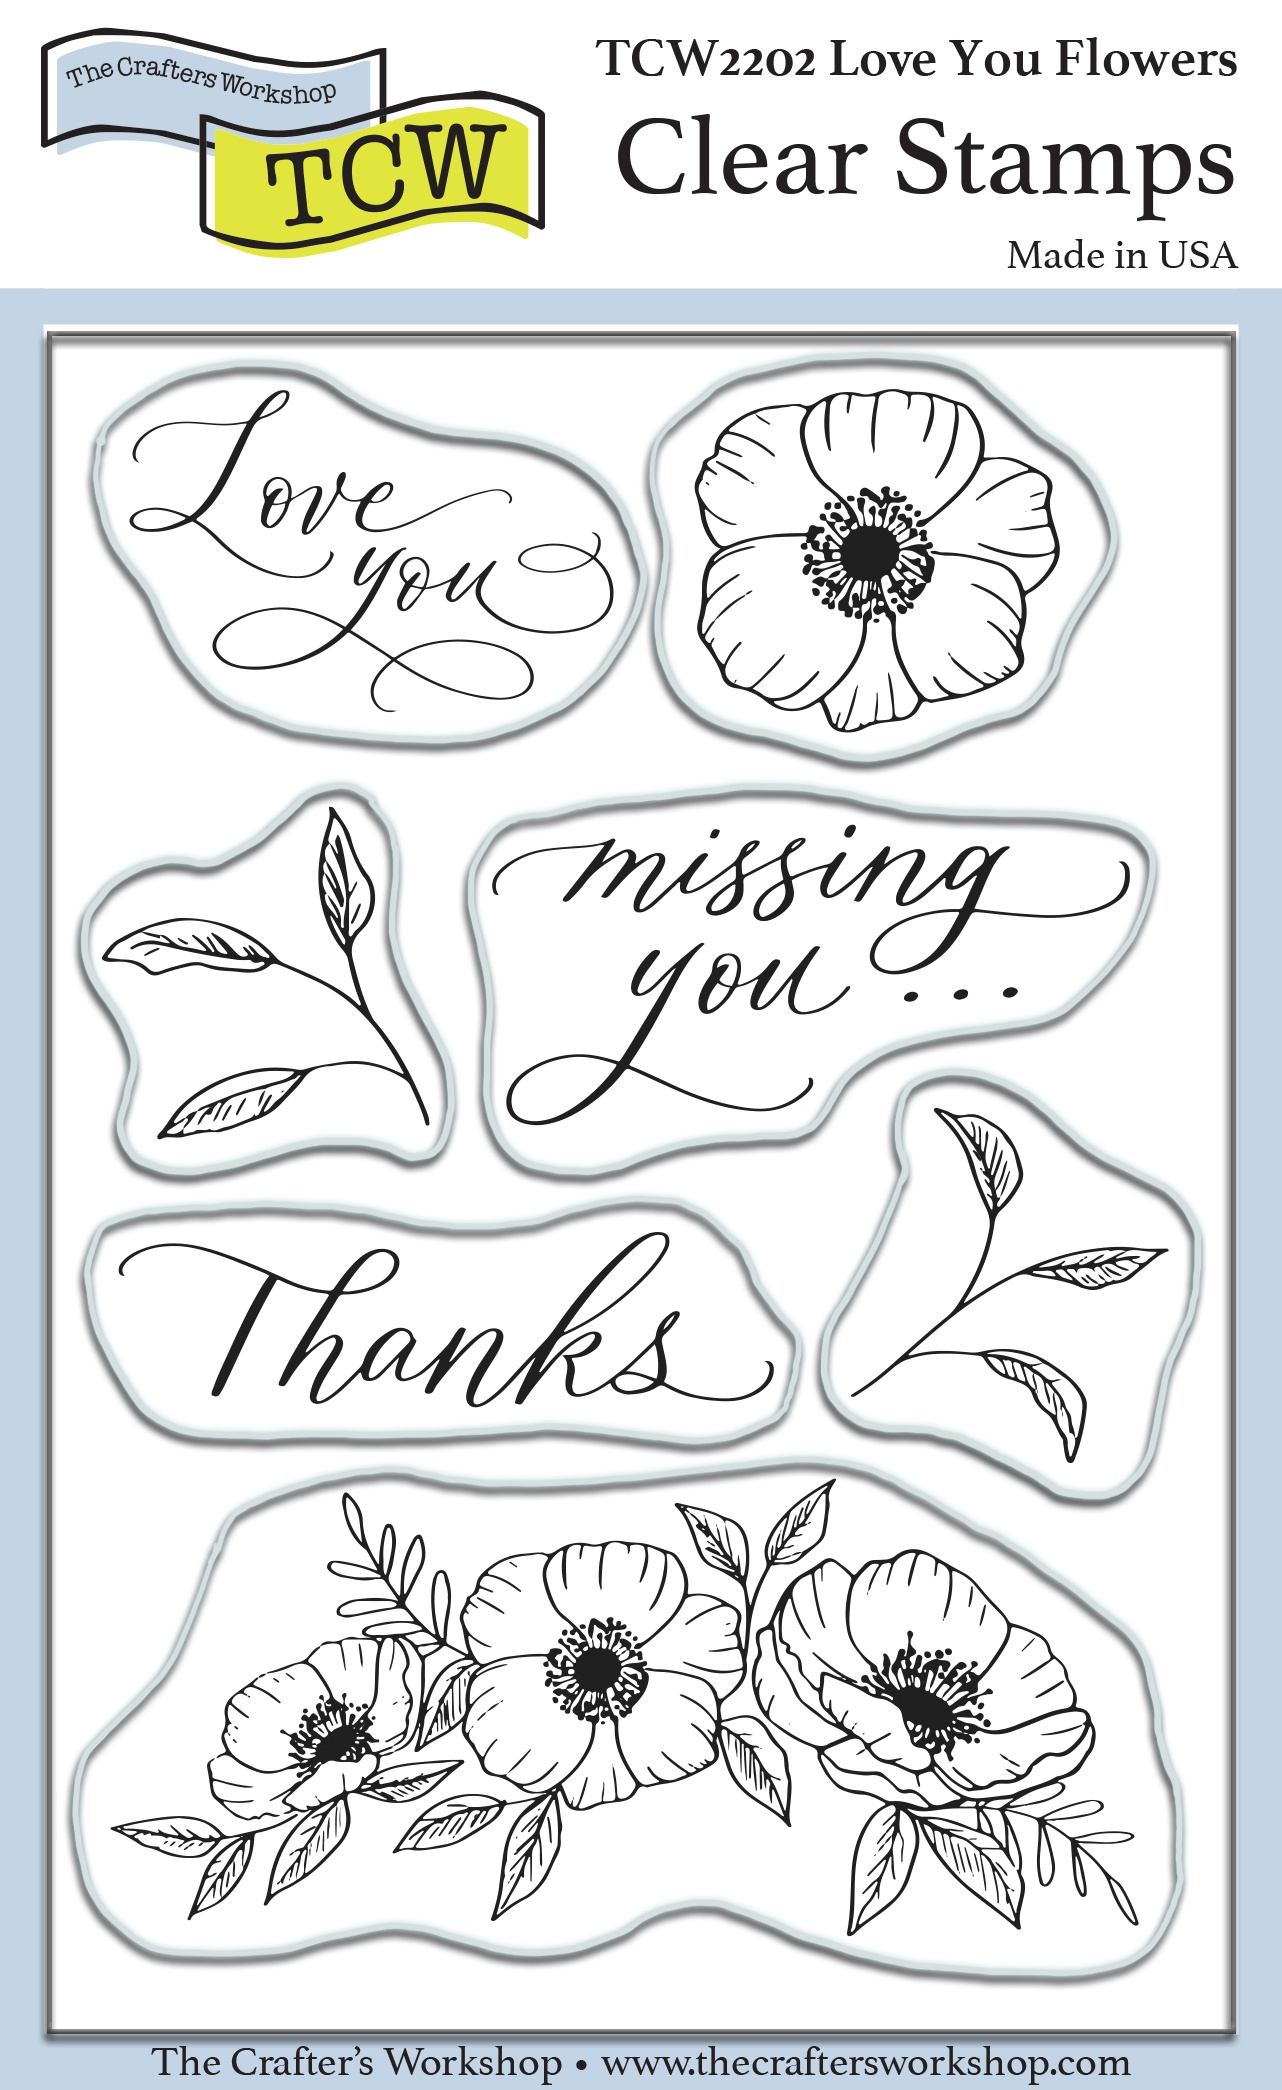 Crafter's Workshop Clear Stamps 4X6-Love You Flowers